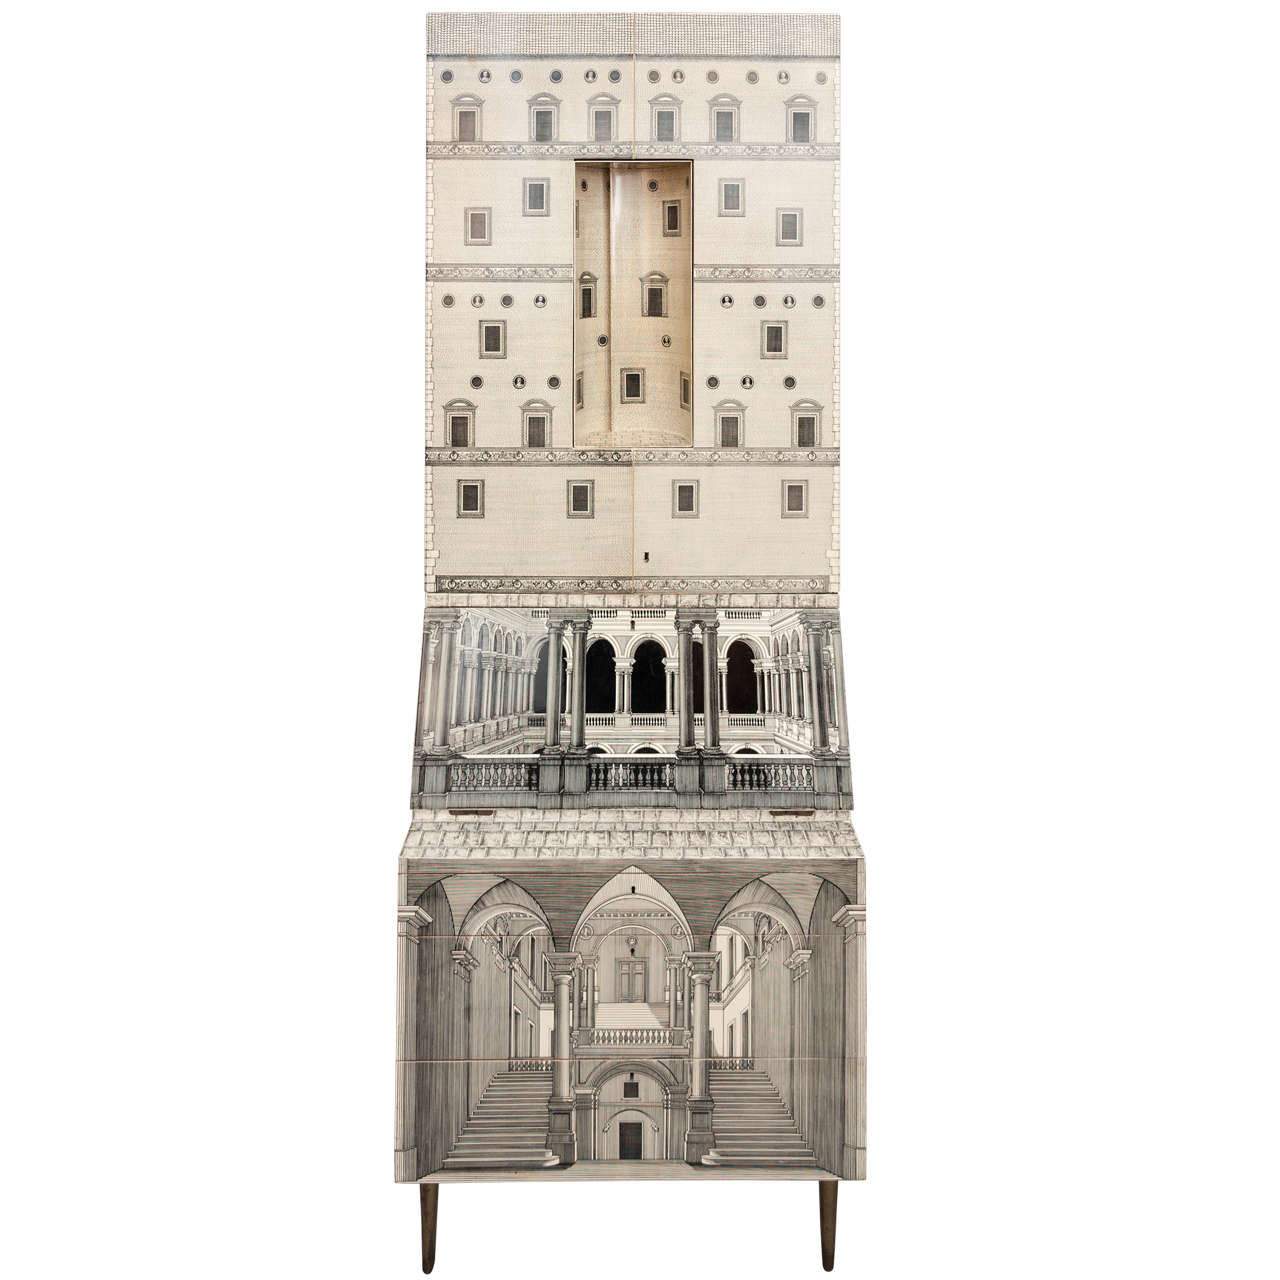 Piero Fornasetti trumeau architettura, Italy circa 1959, Holly Johnson Antiques & Interior Design